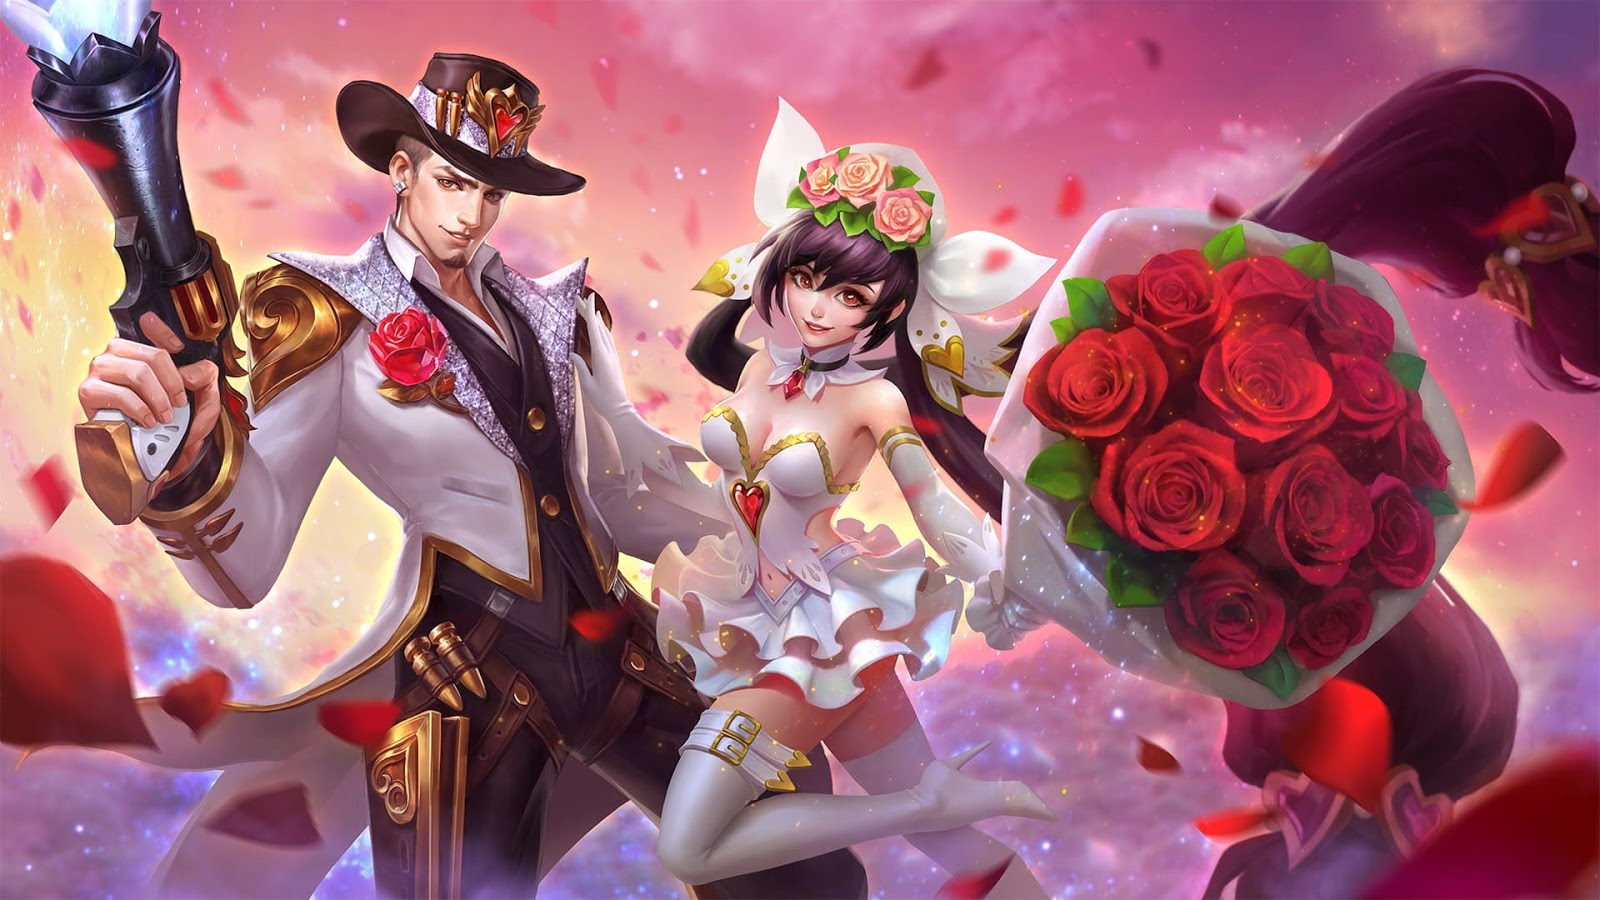 Wallpaper Clint and Layla Cannon and Roses Skin Mobile Legends  Full HD for PC